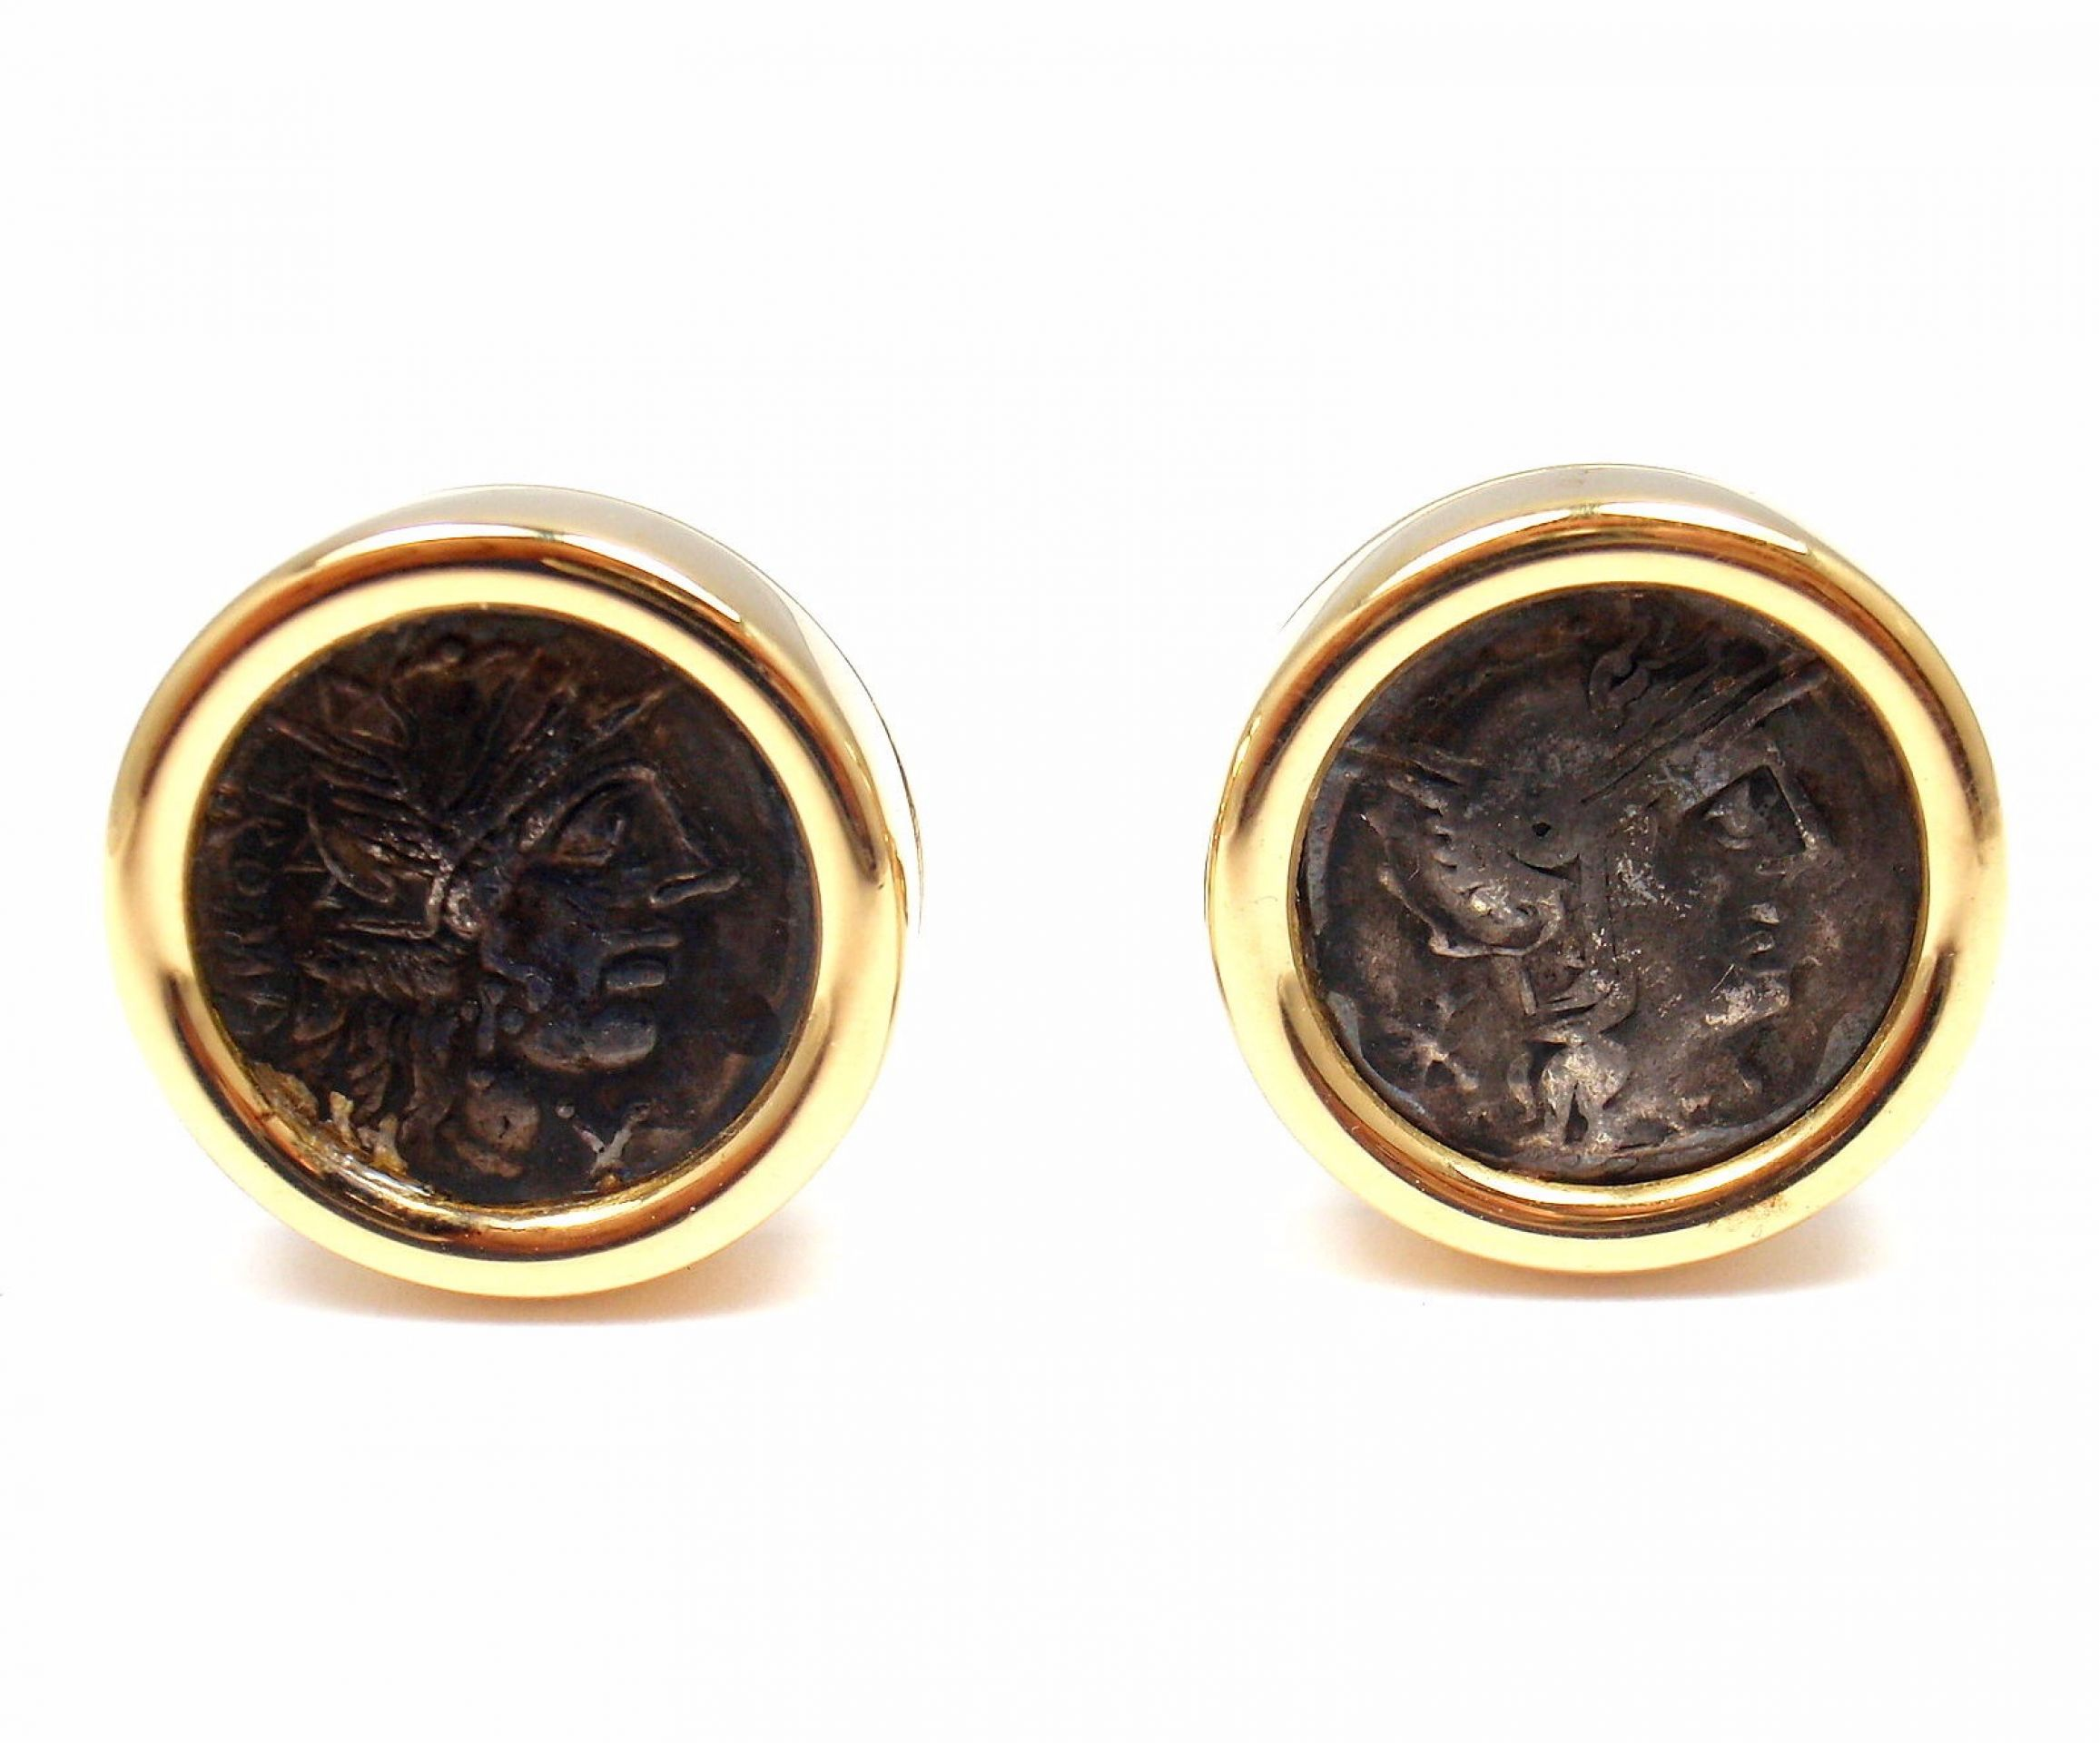 Bulgari Bvlgari 18k Yellow Gold Large Ancient Coin Mens Cufflinks